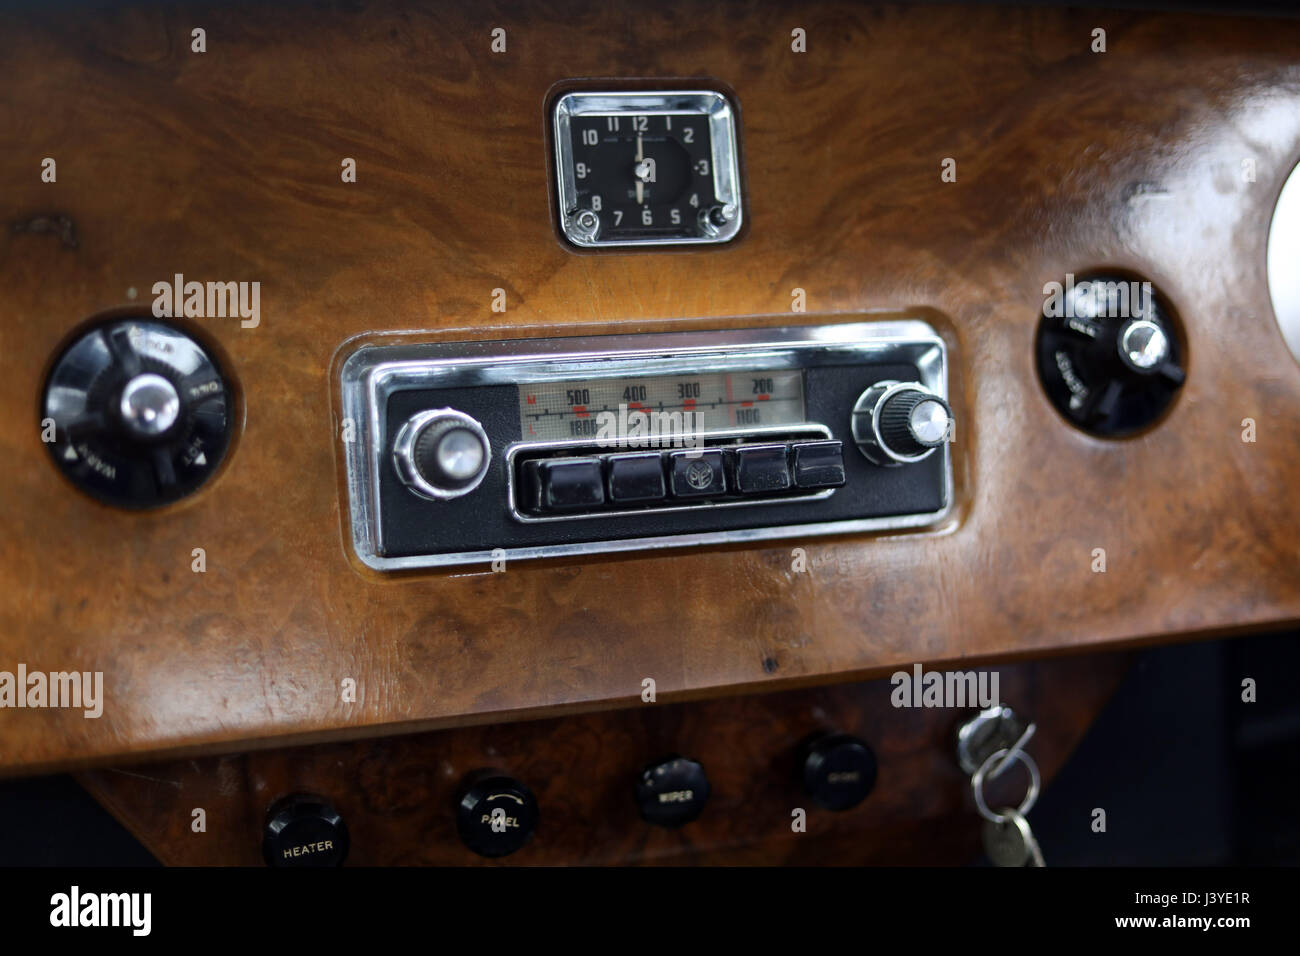 old style car radio vintage Stock Photo: 140130643 - Alamy